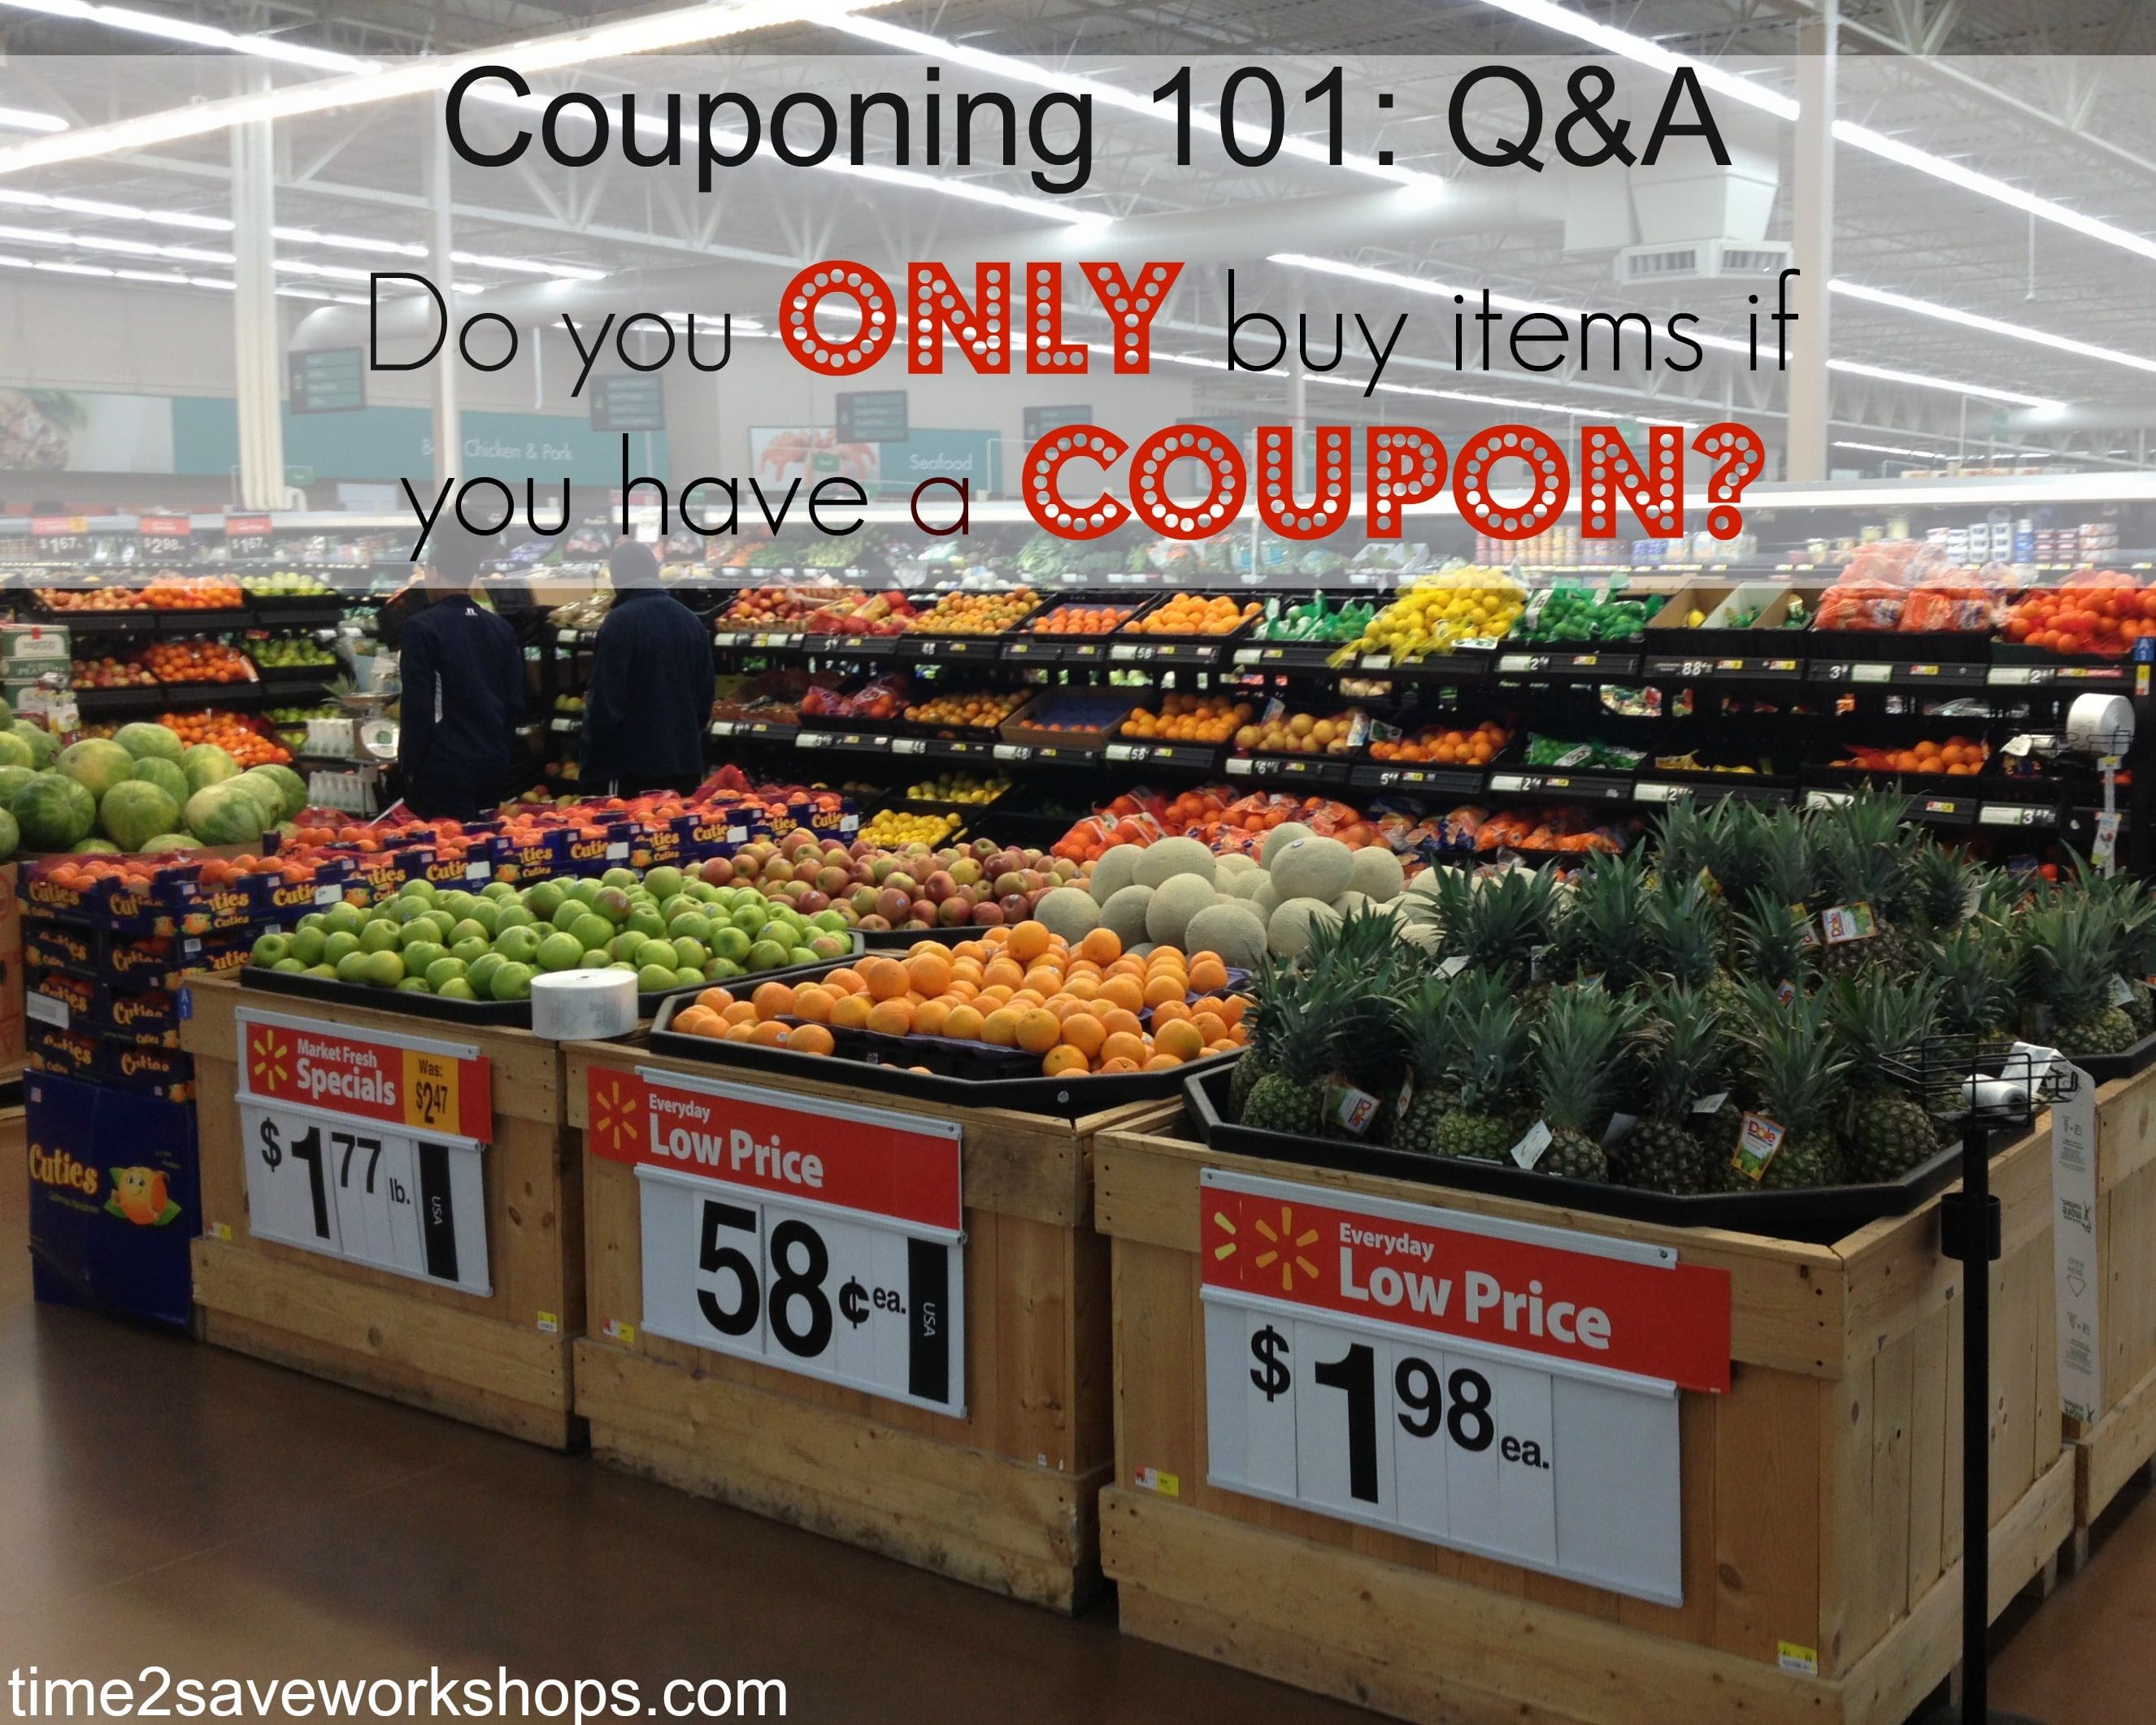 couponing 101 q&a